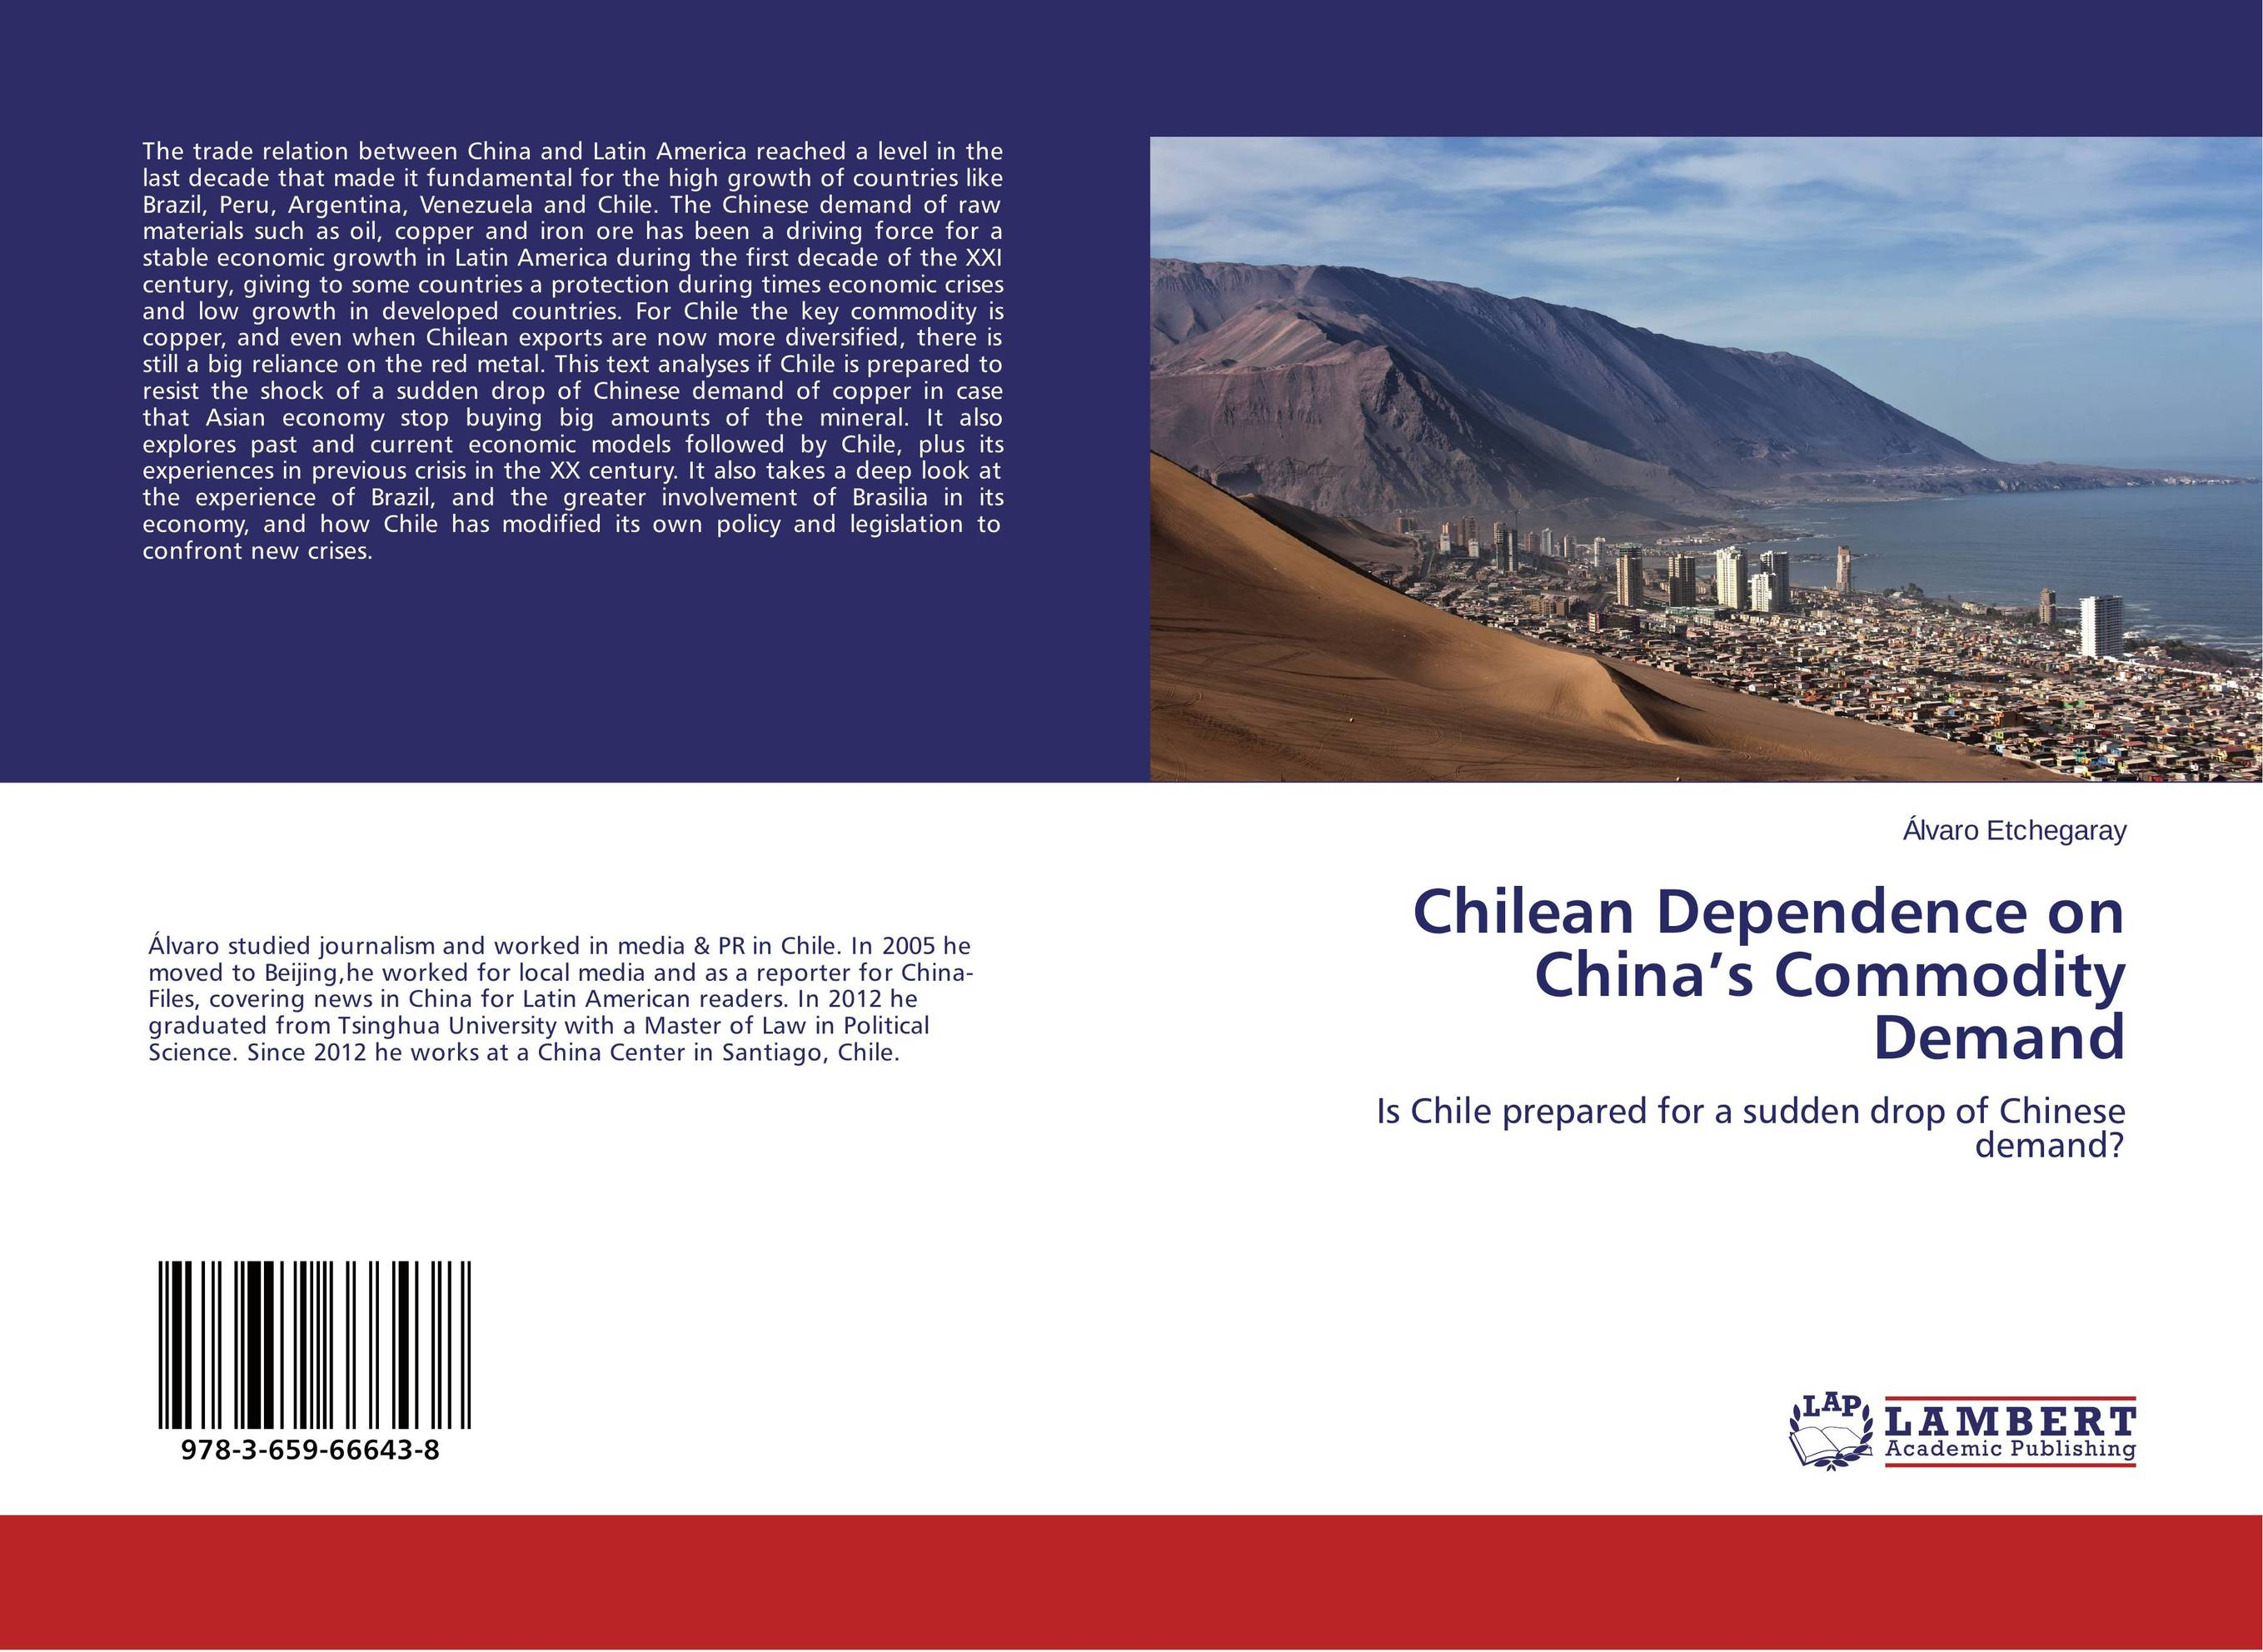 Chilean Dependence on China's Commodity Demand